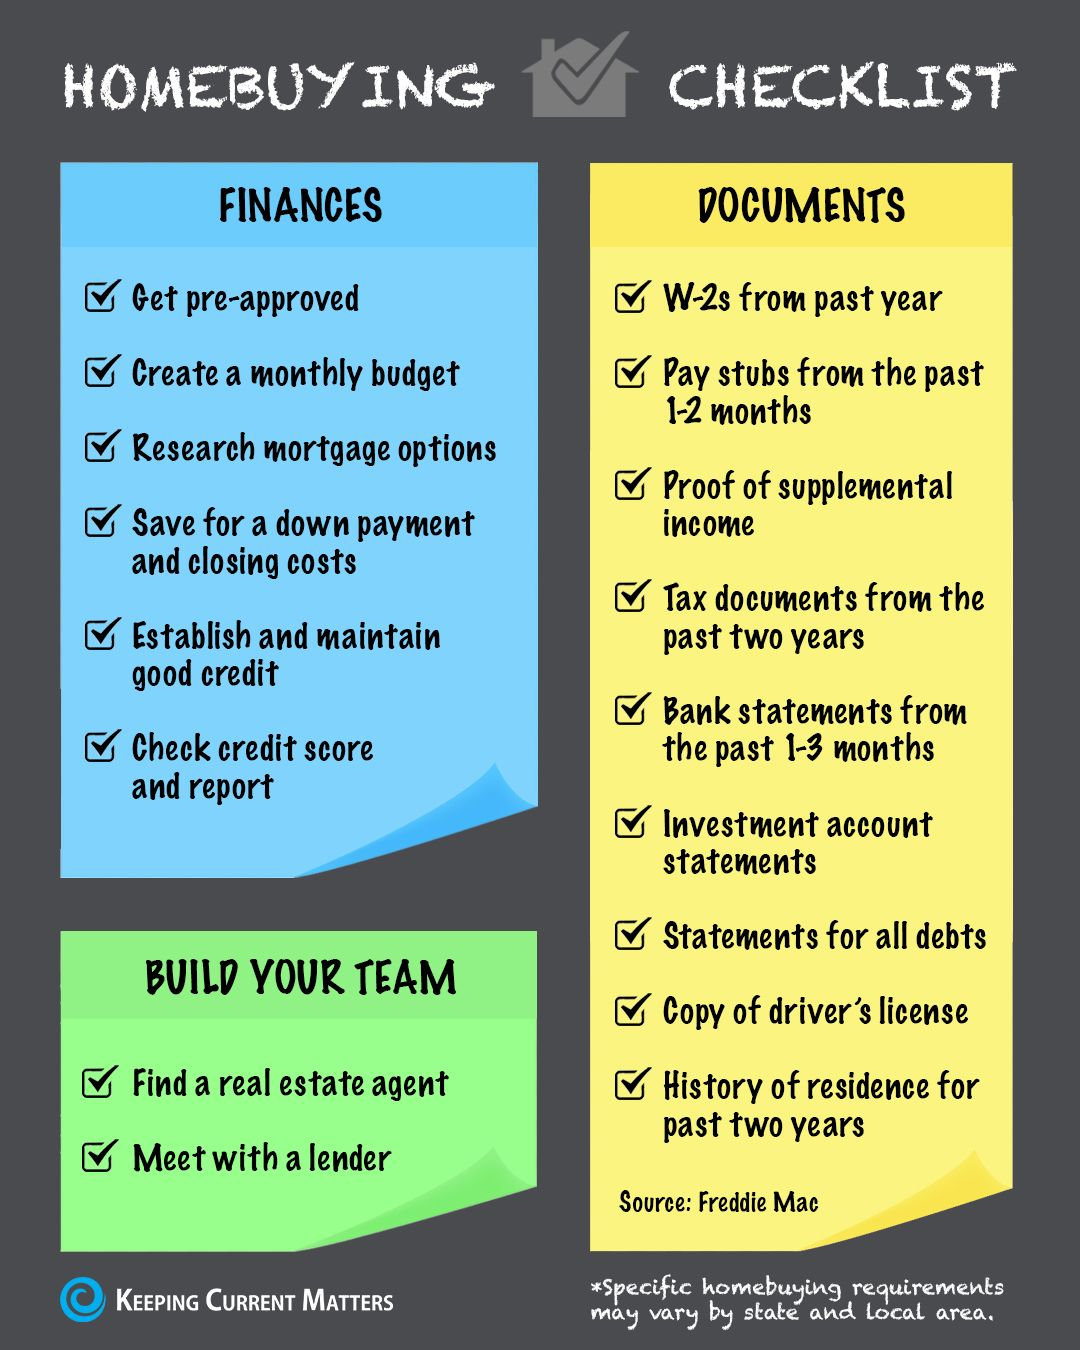 2020 Homebuying Checklist In 2020 Home Buying Checklist Home